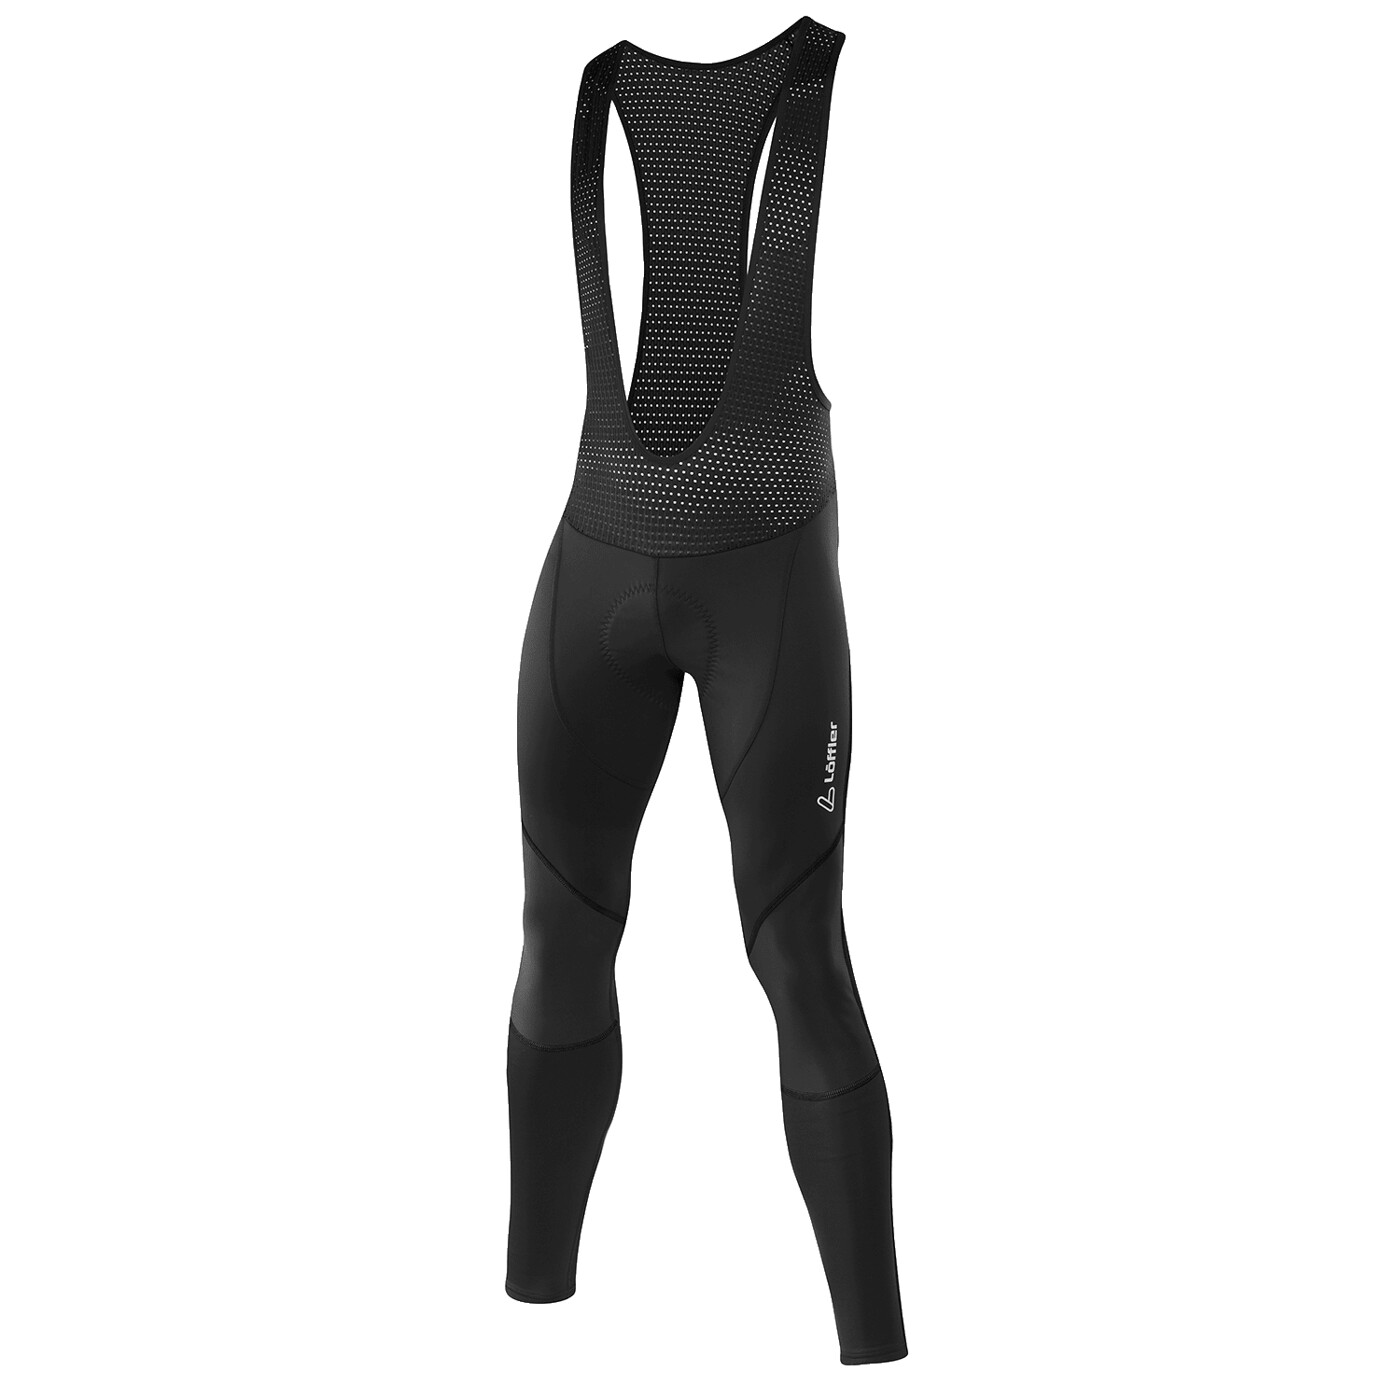 LÖFFLER M BIKE BIB TIGHTS EVO WS ELAST - Herren